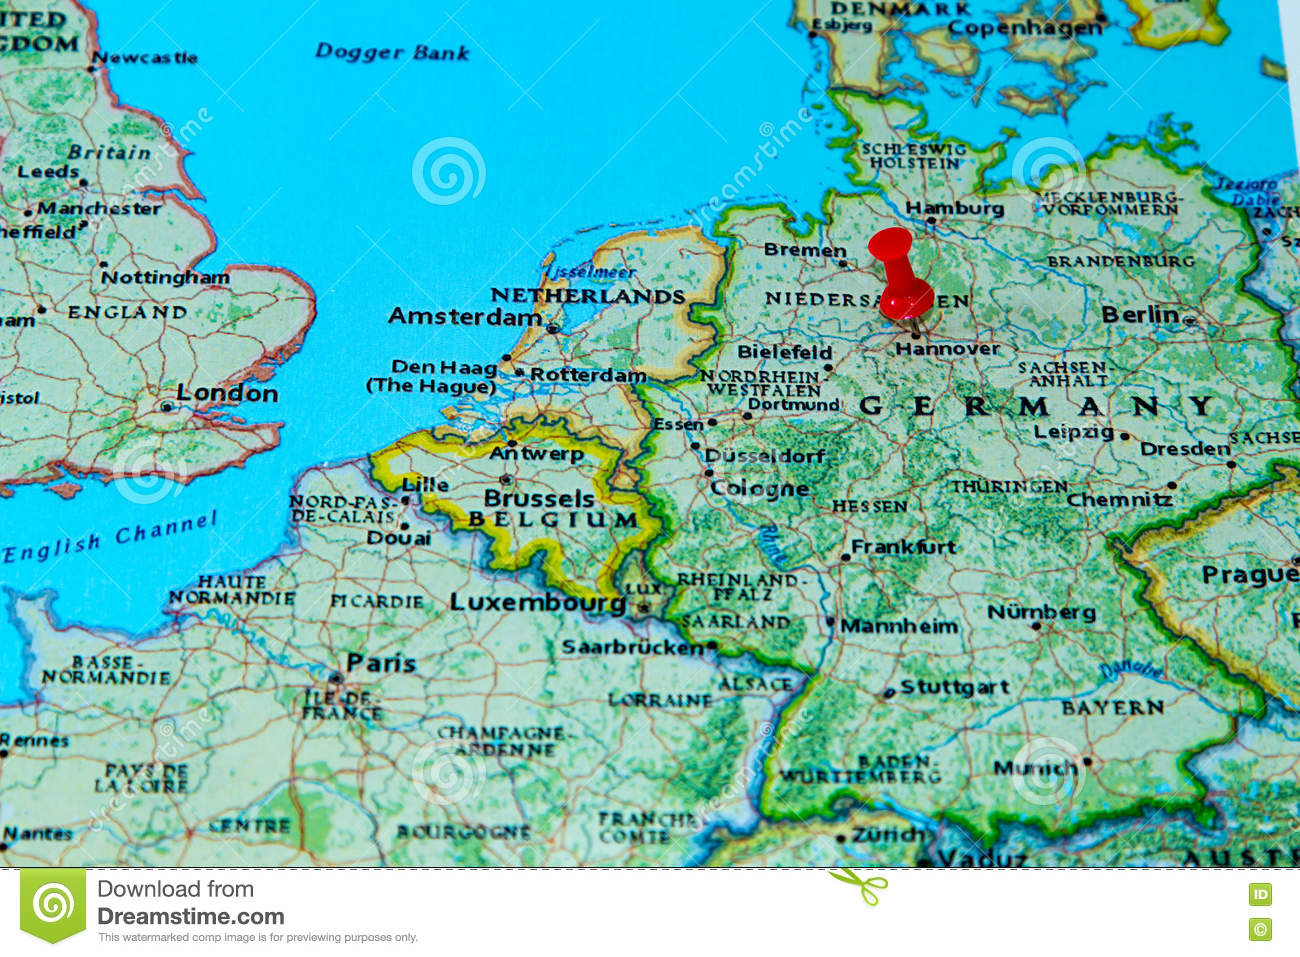 Antwerp Map Europe.Hannover Germany Pinned On A Map Of Europe Stock Photo Image Of